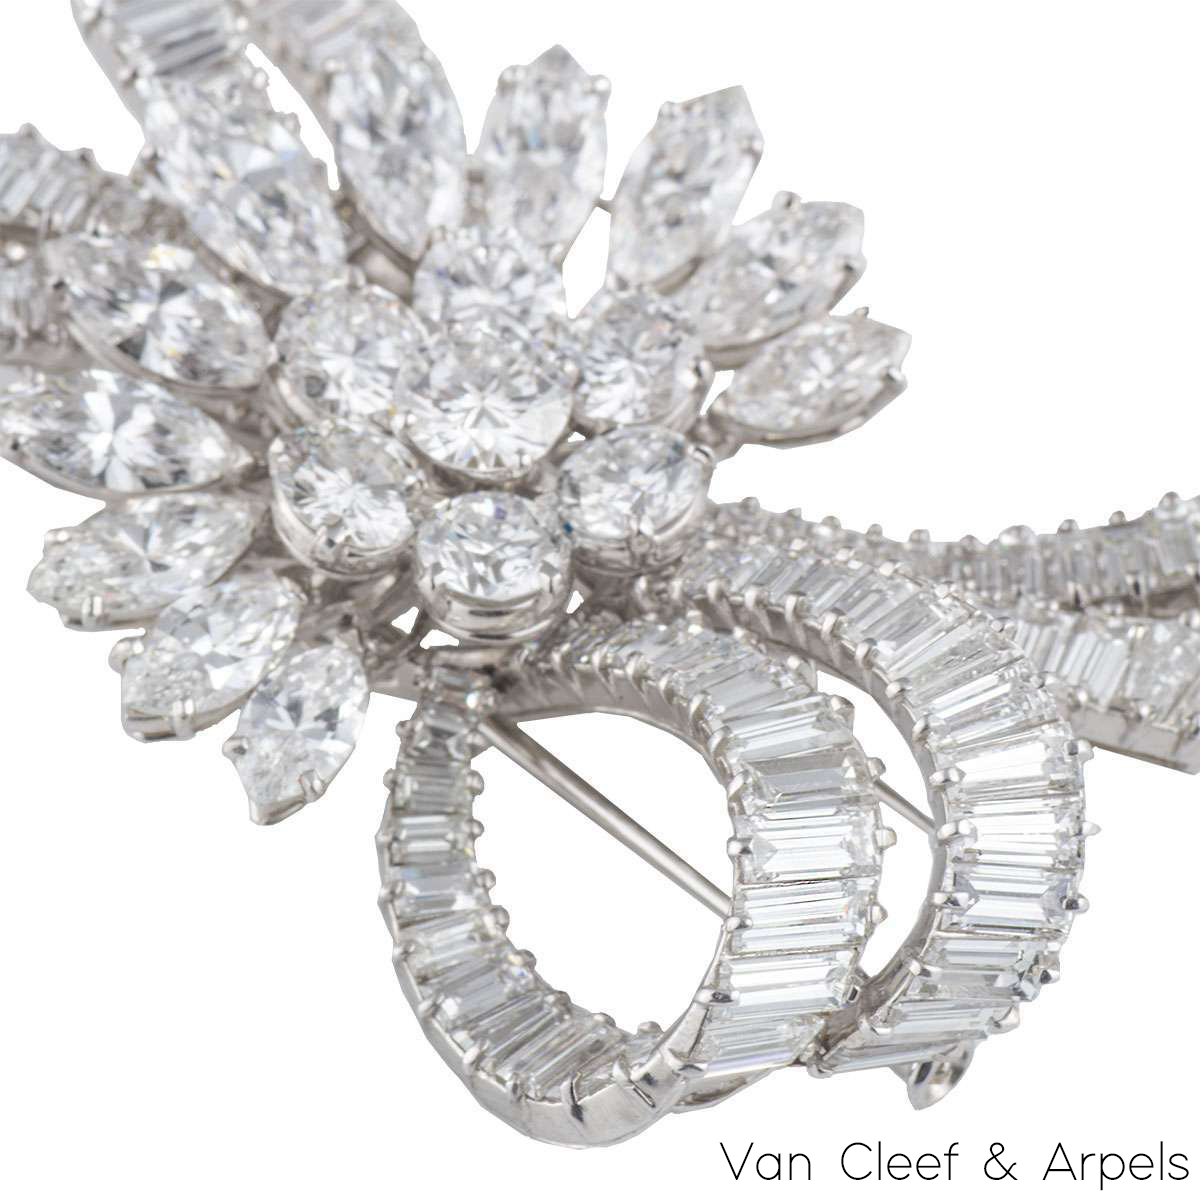 Van Cleef & Arpels Diamonds Brooch c.1950.